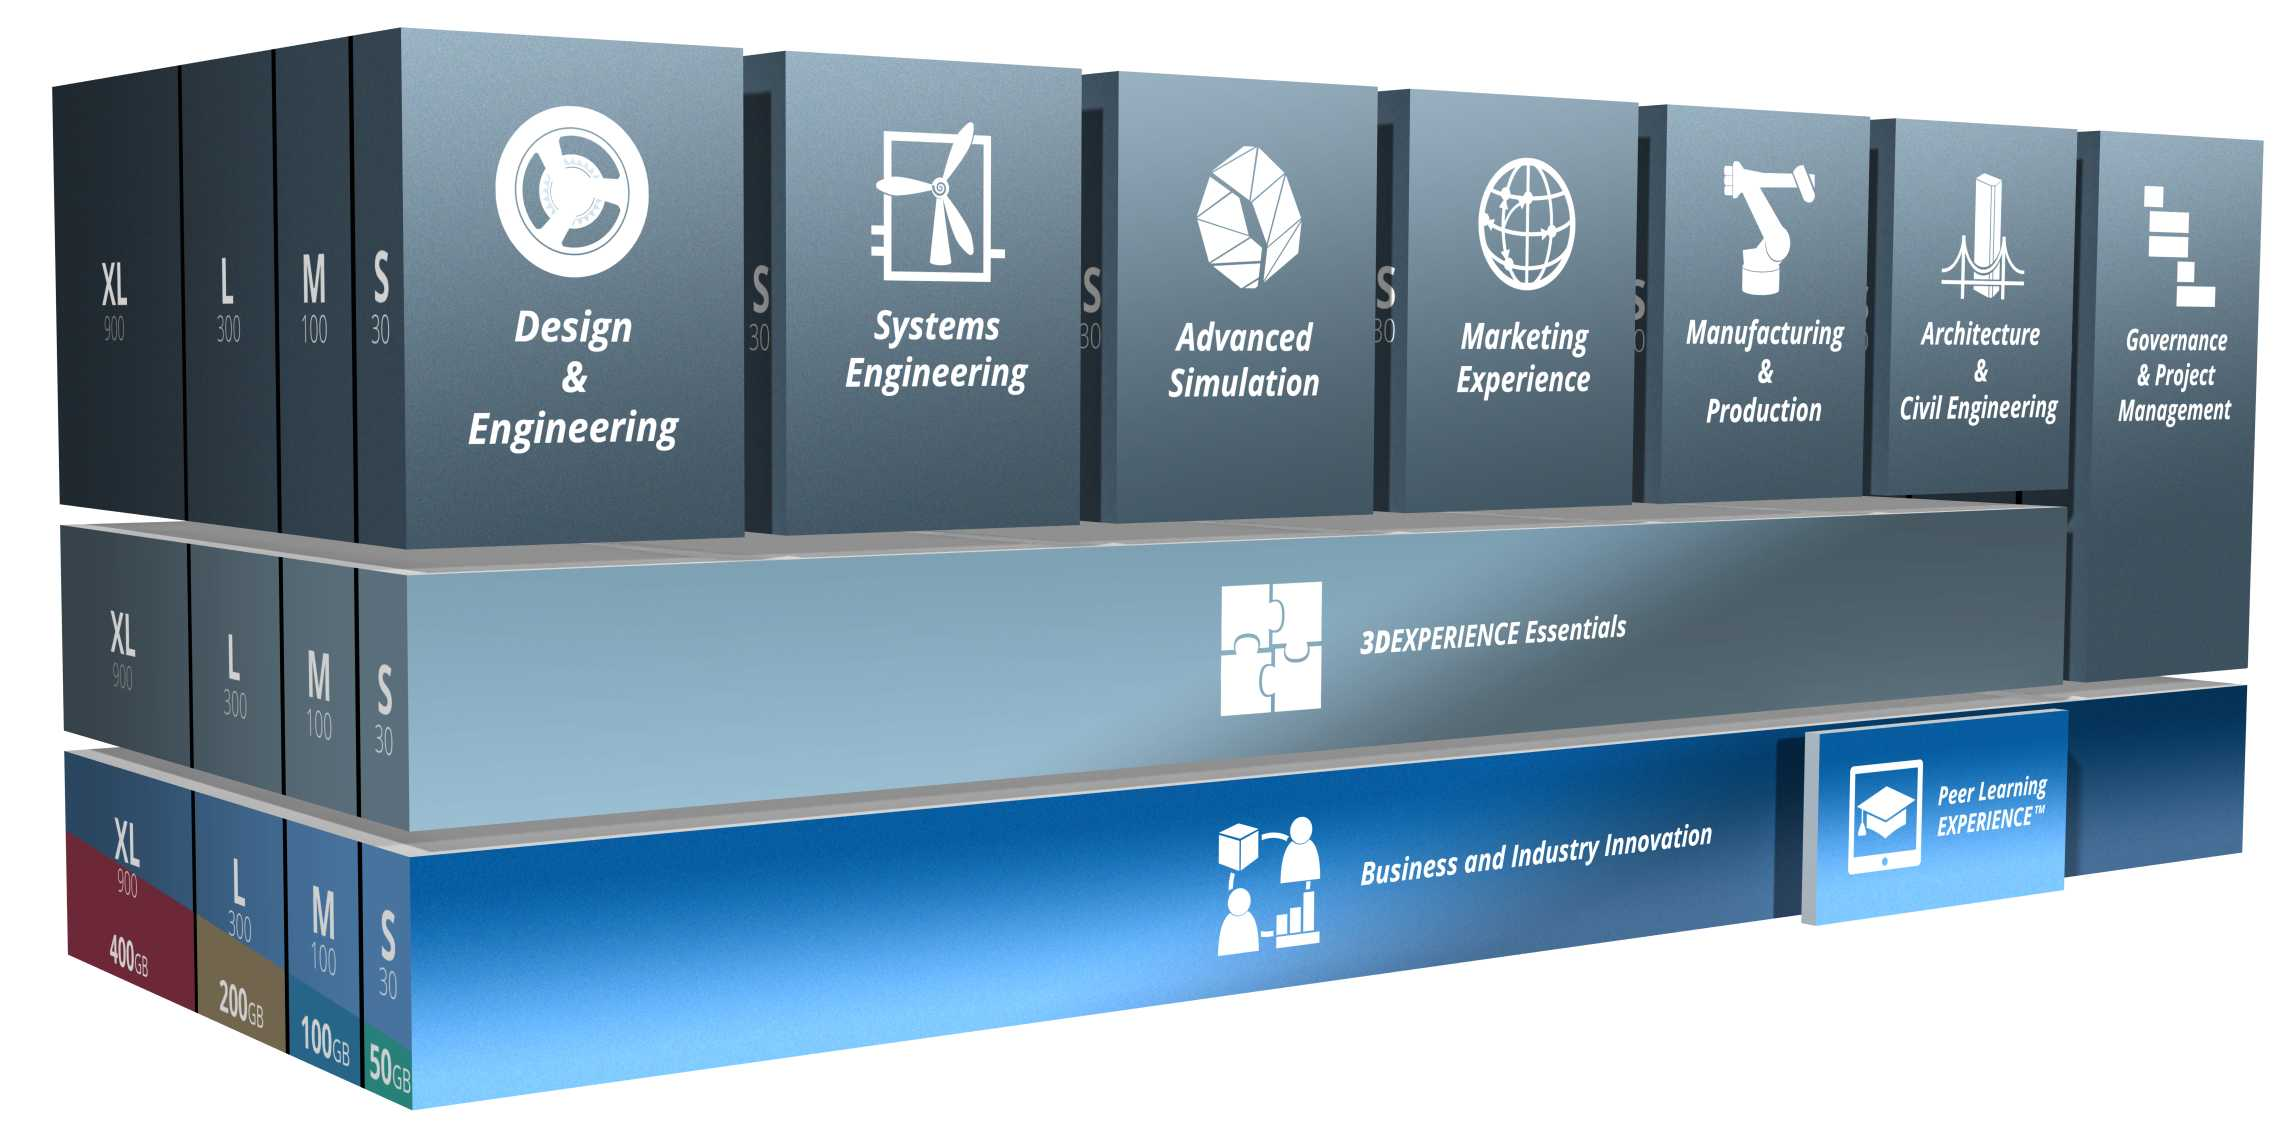 The Engineering Design Process Worksheet Answers with 3dexperience for Academia